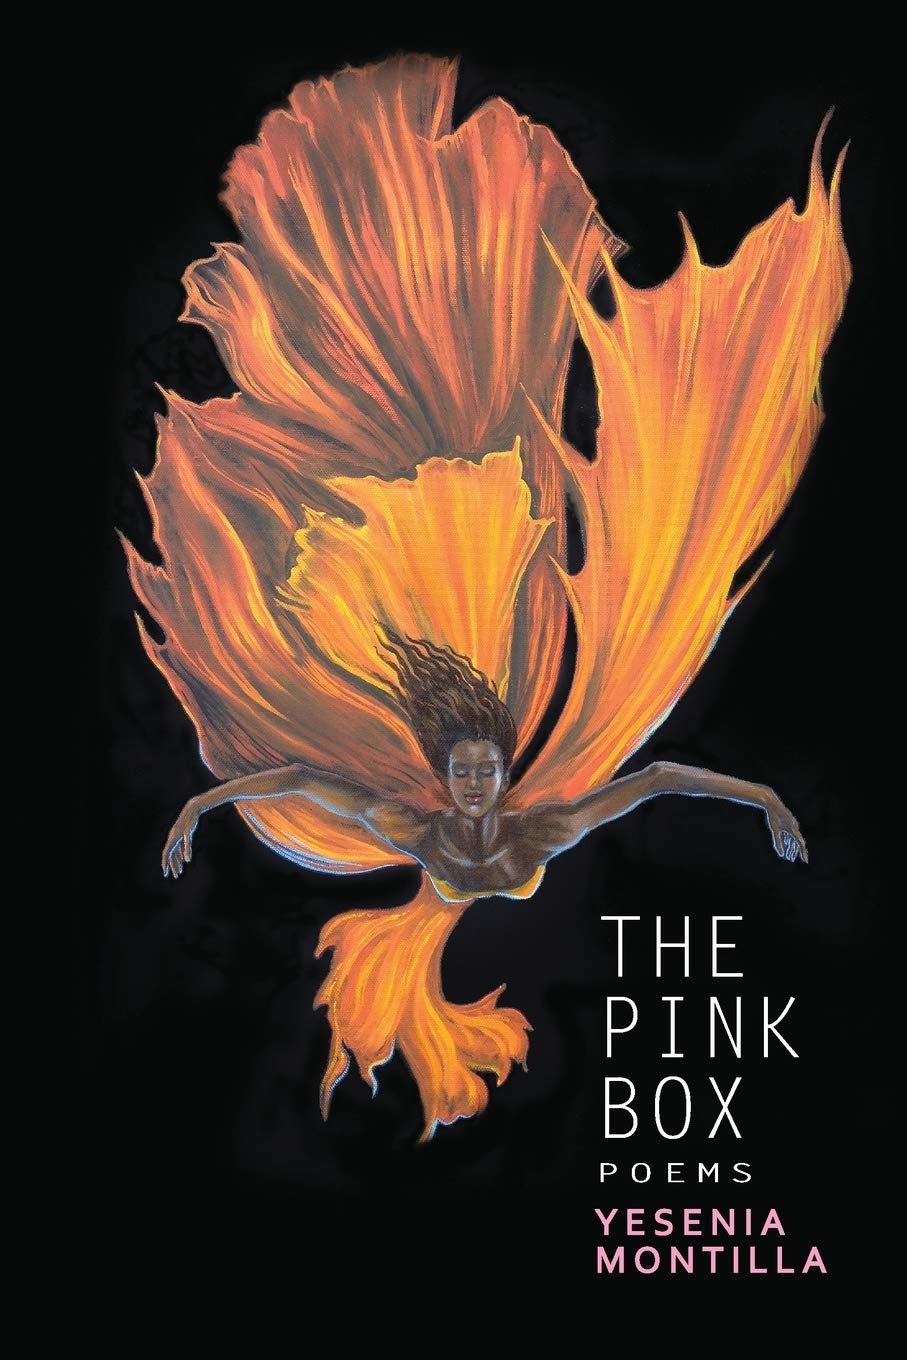 The Pink Box book cover